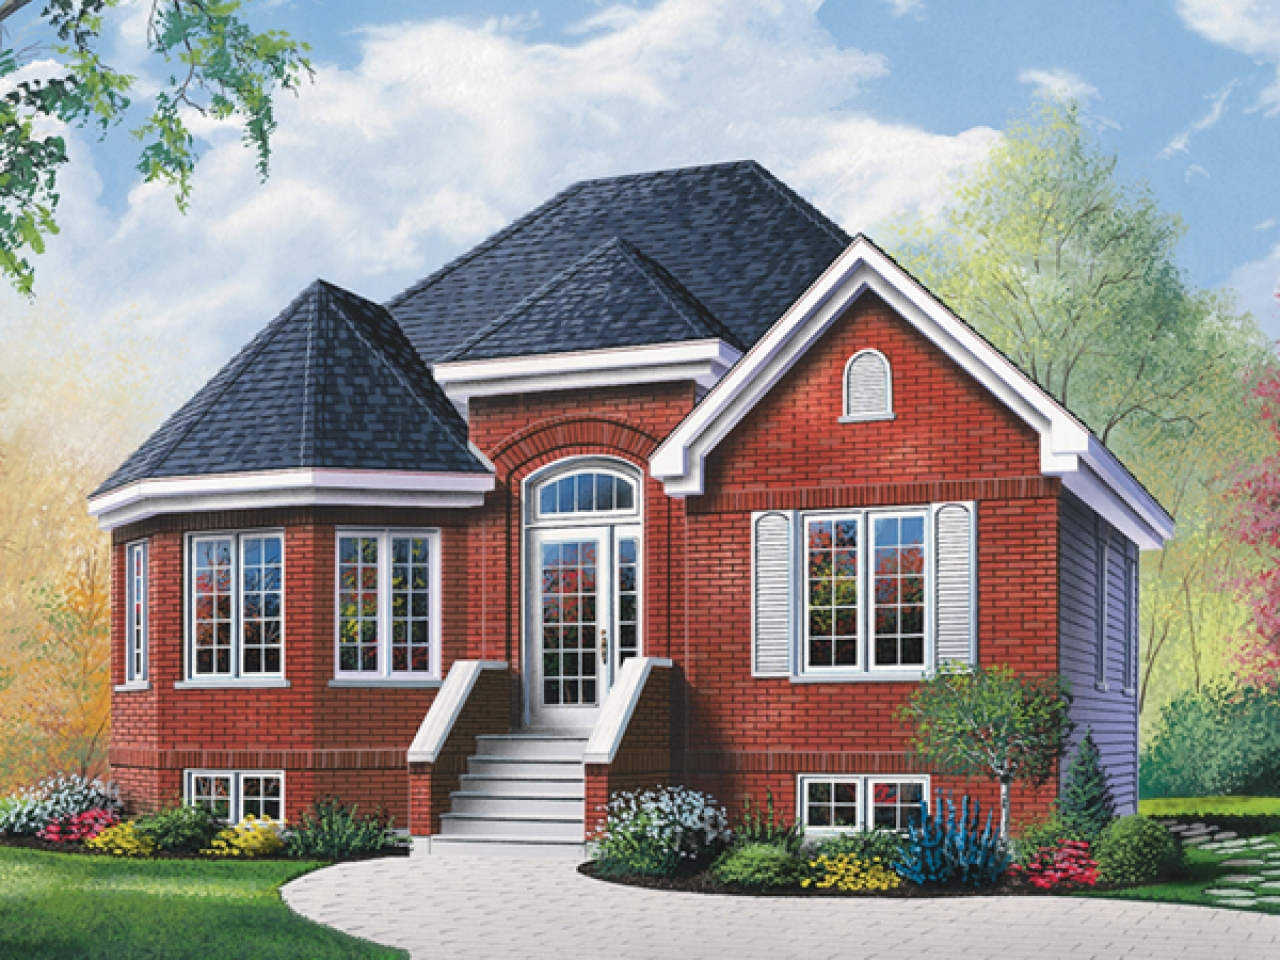 Brick ranch house with bay window ranch house plans with for House plans with bay windows